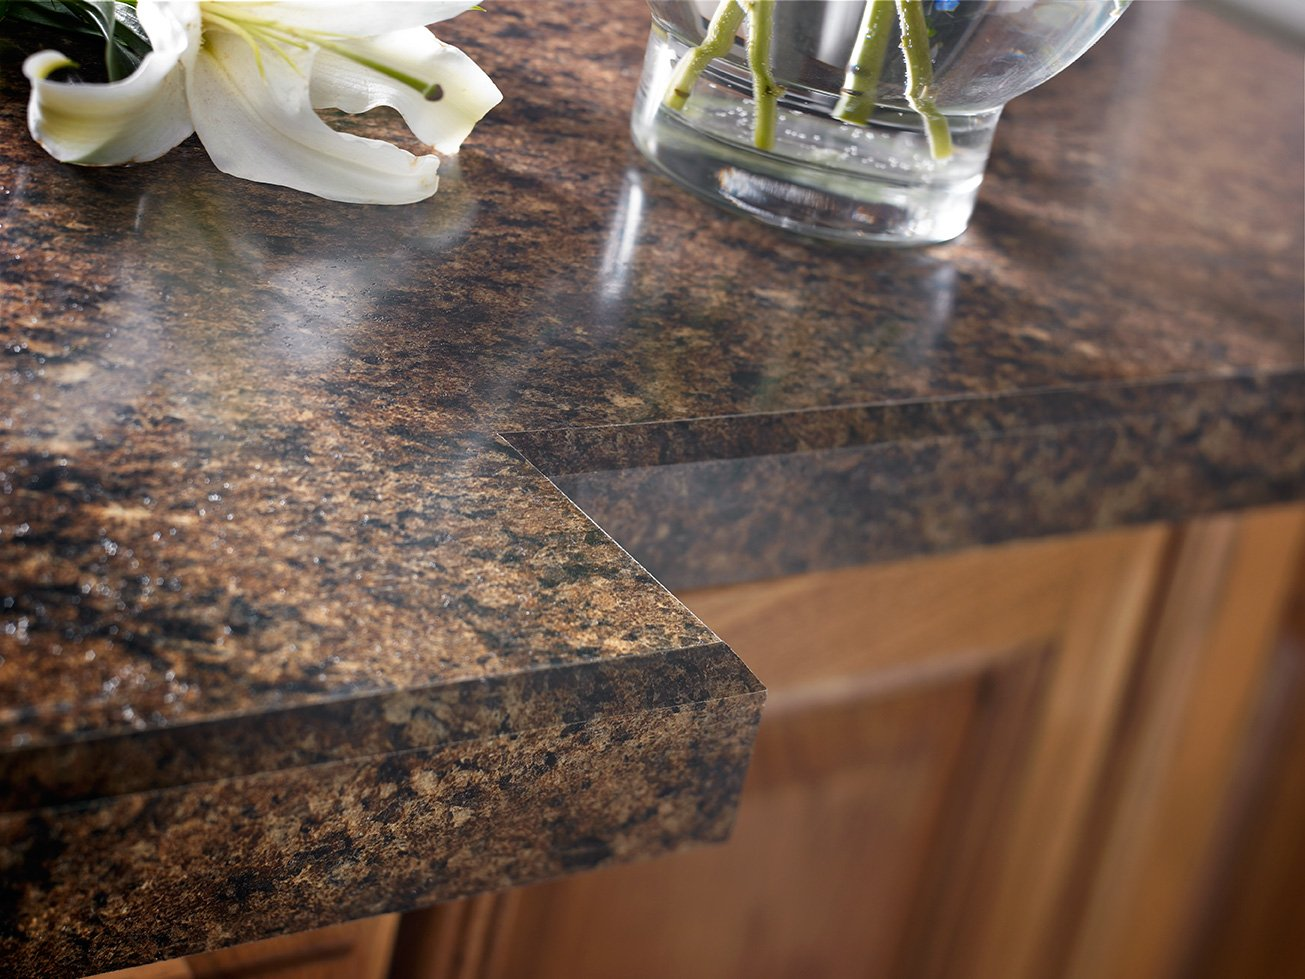 Although Laminate Is Not Quite As Stunning Or Durable As Other Countertop  Materials, It Remains The Best Value For Most Kitchen Remodeling ...